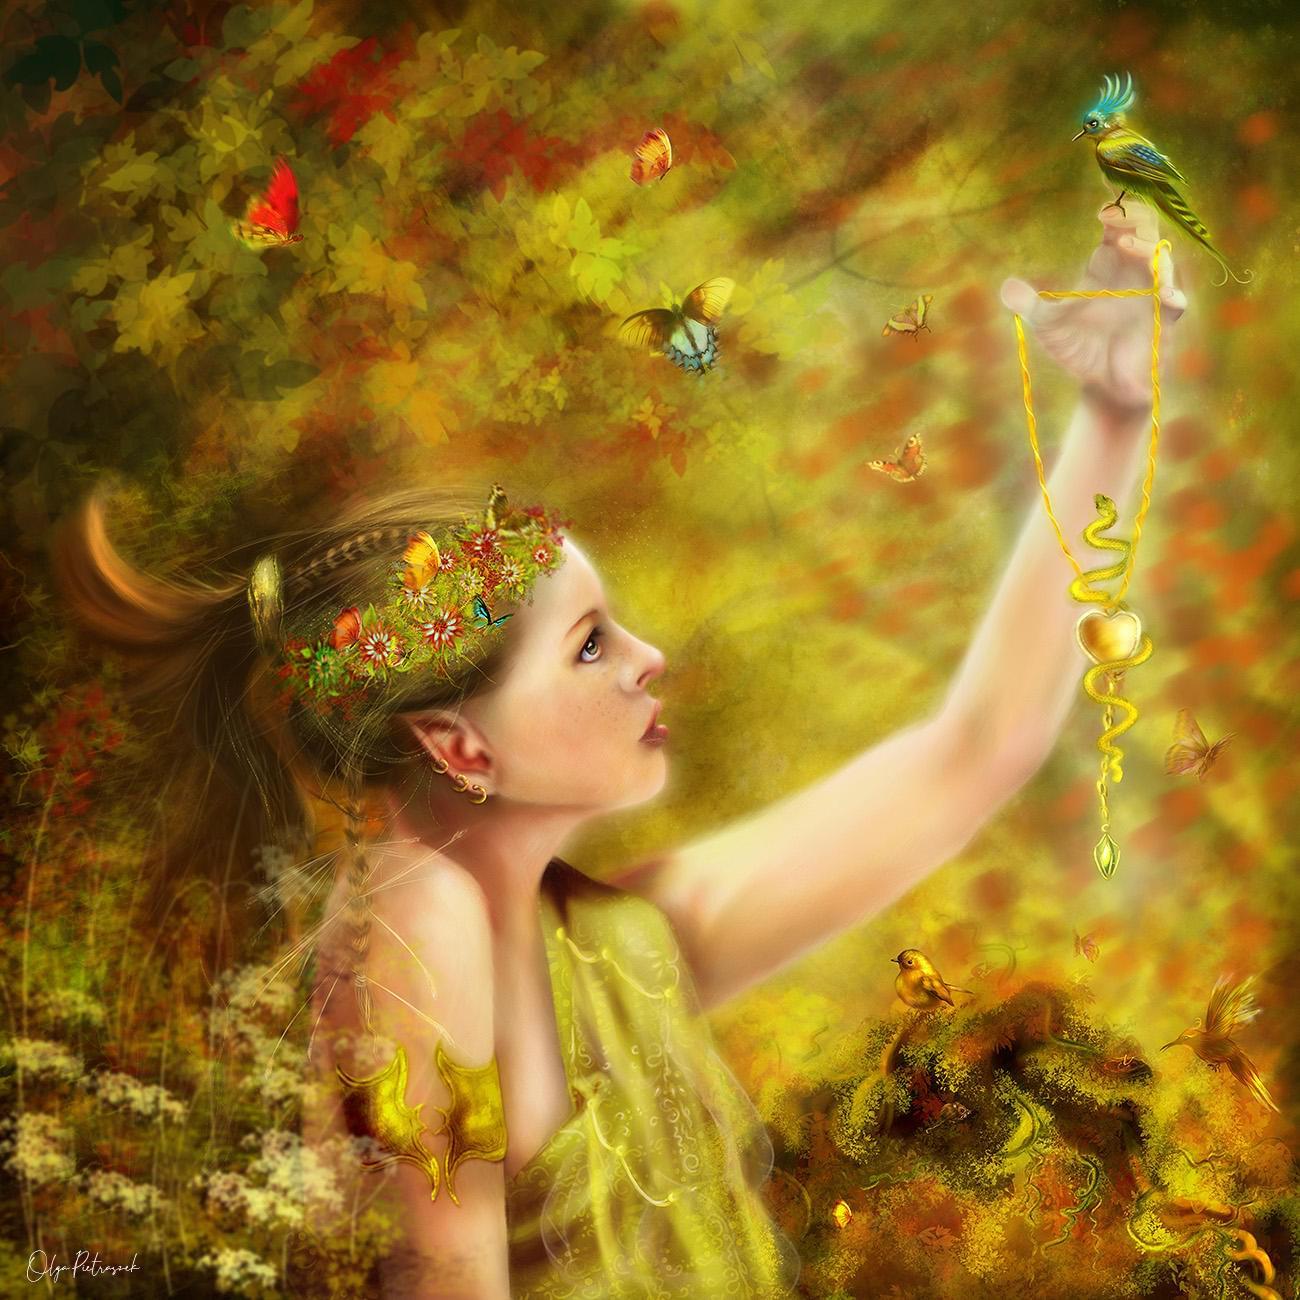 Digital Painting - Detailed Fantasy Illustration - Digital Fine Art by CrArt - 115404